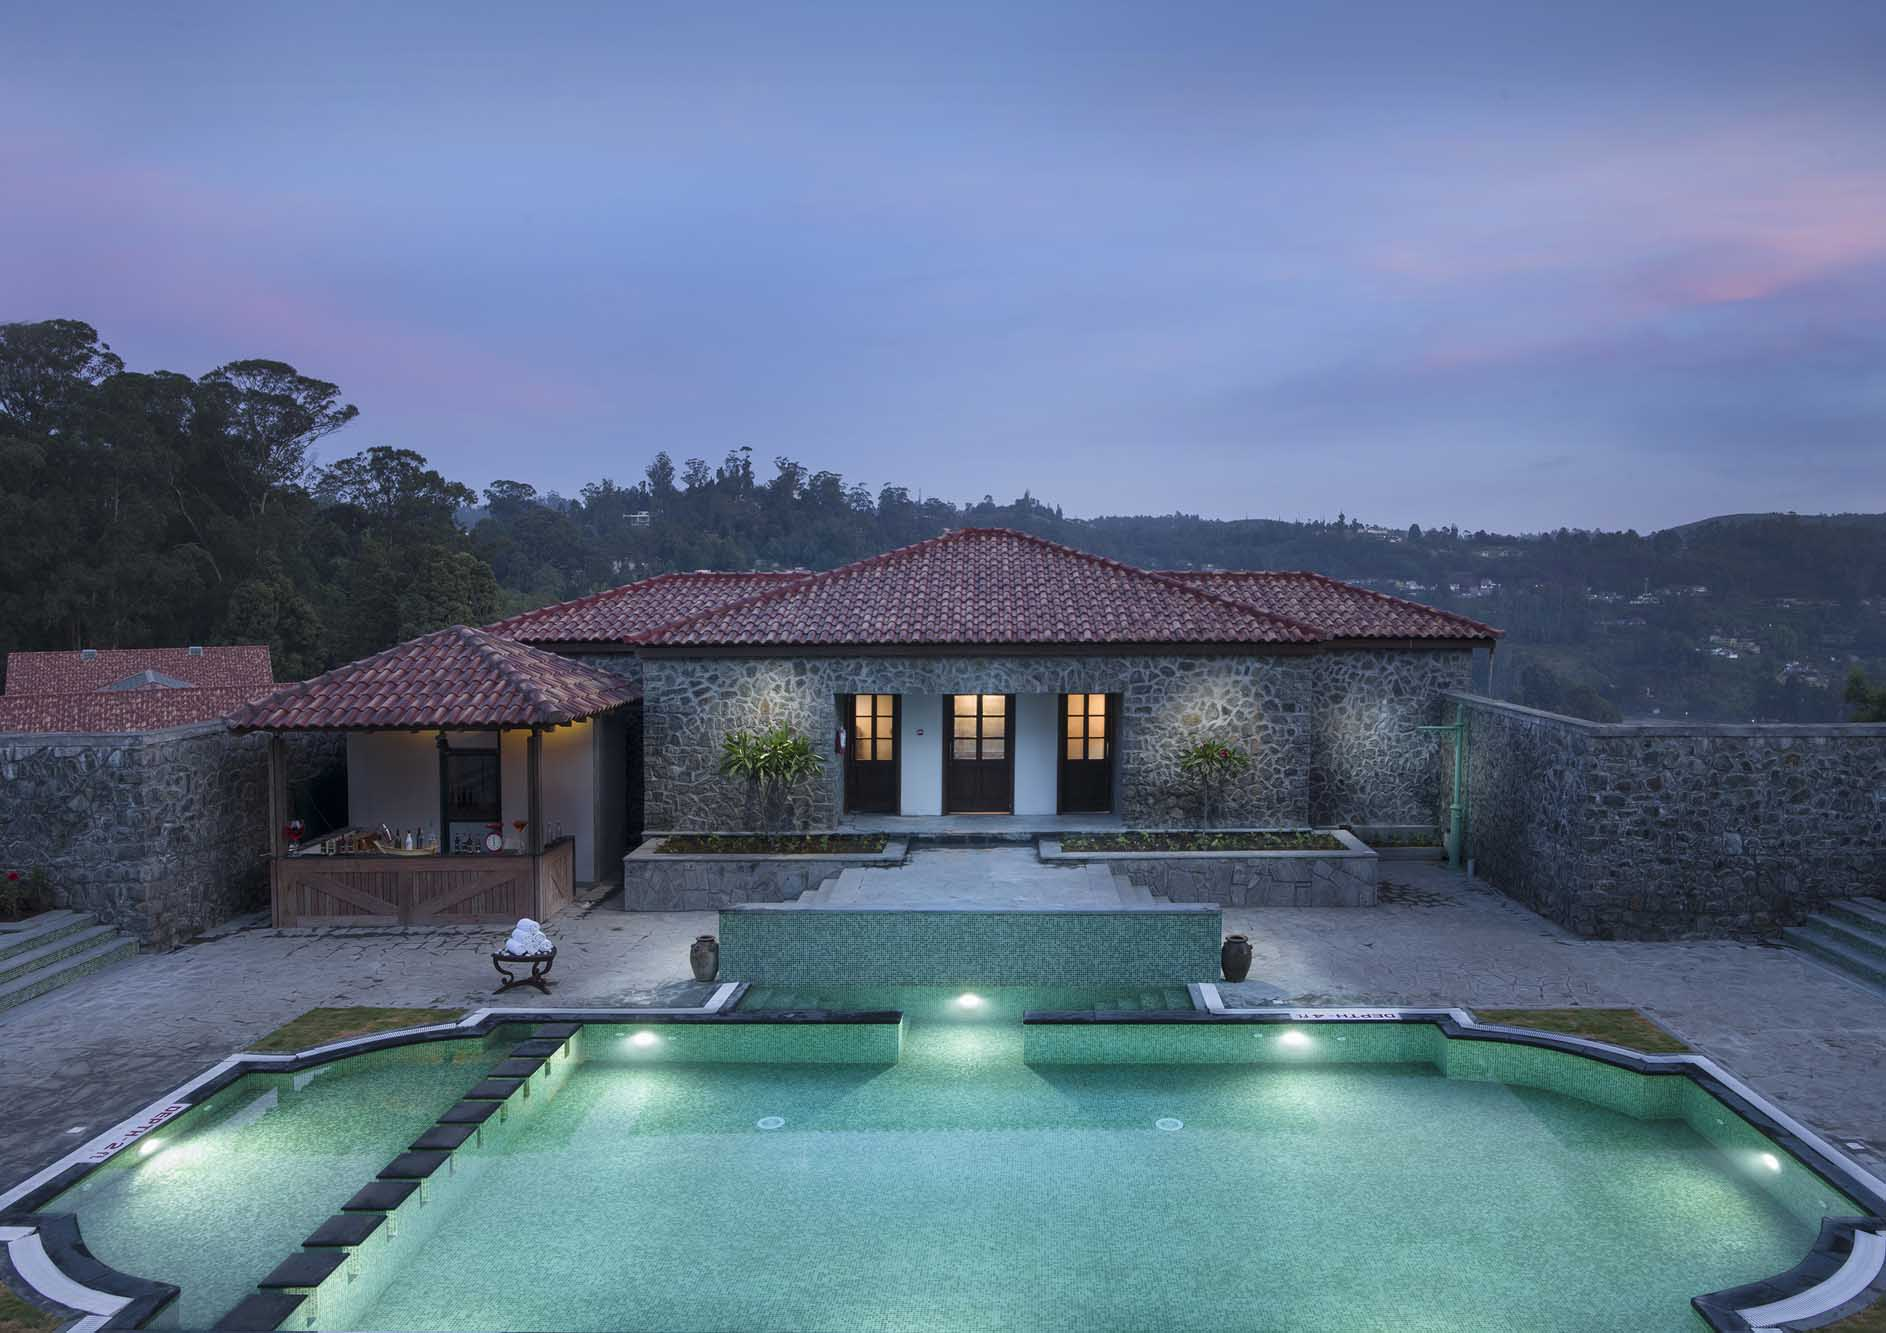 heritage-building-with-Swimming-pool